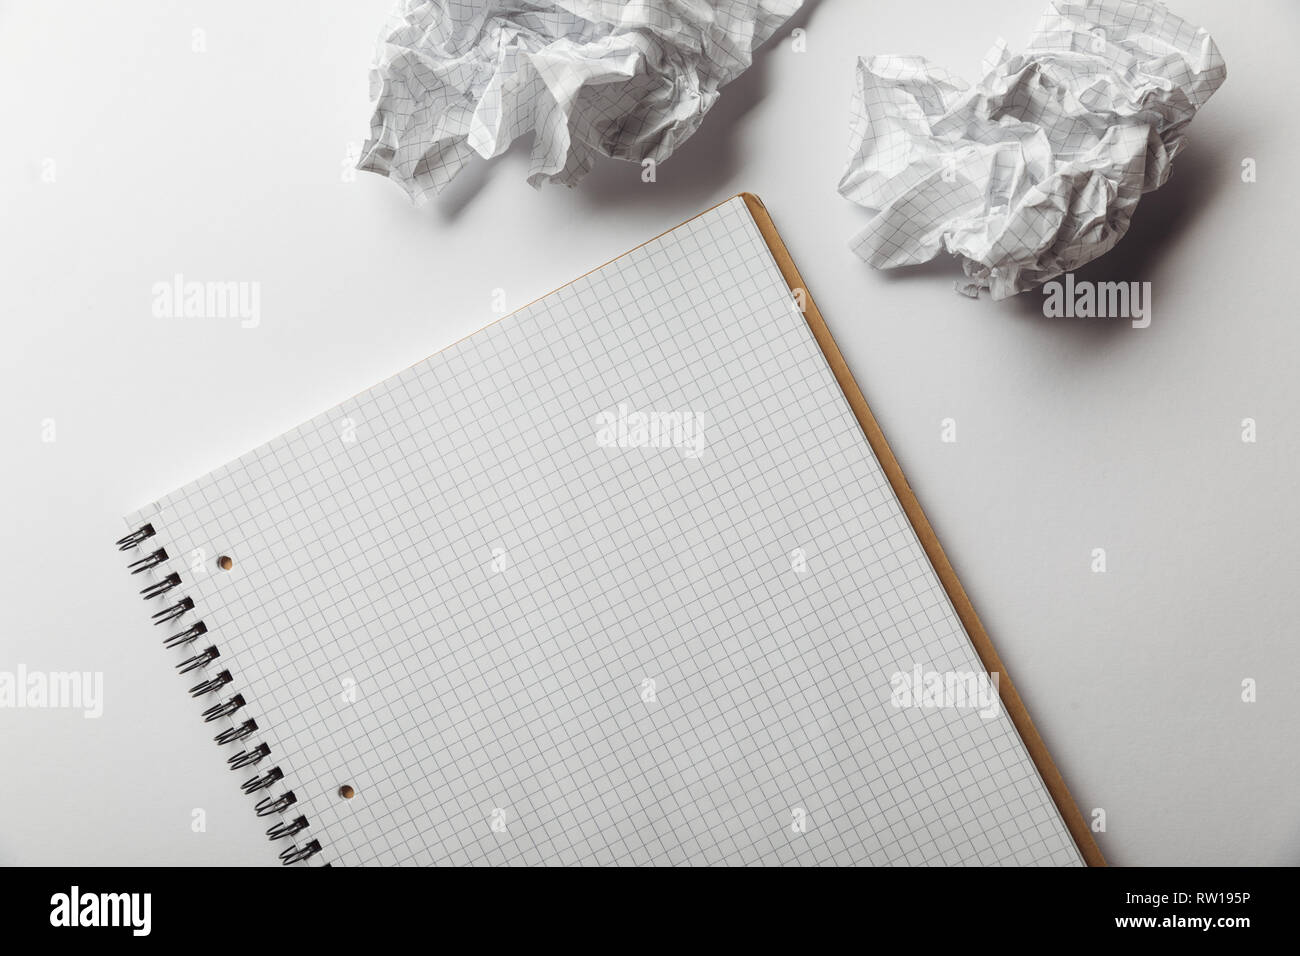 top view of notebook with blank squared page near crumpled sheets on white background - Stock Image